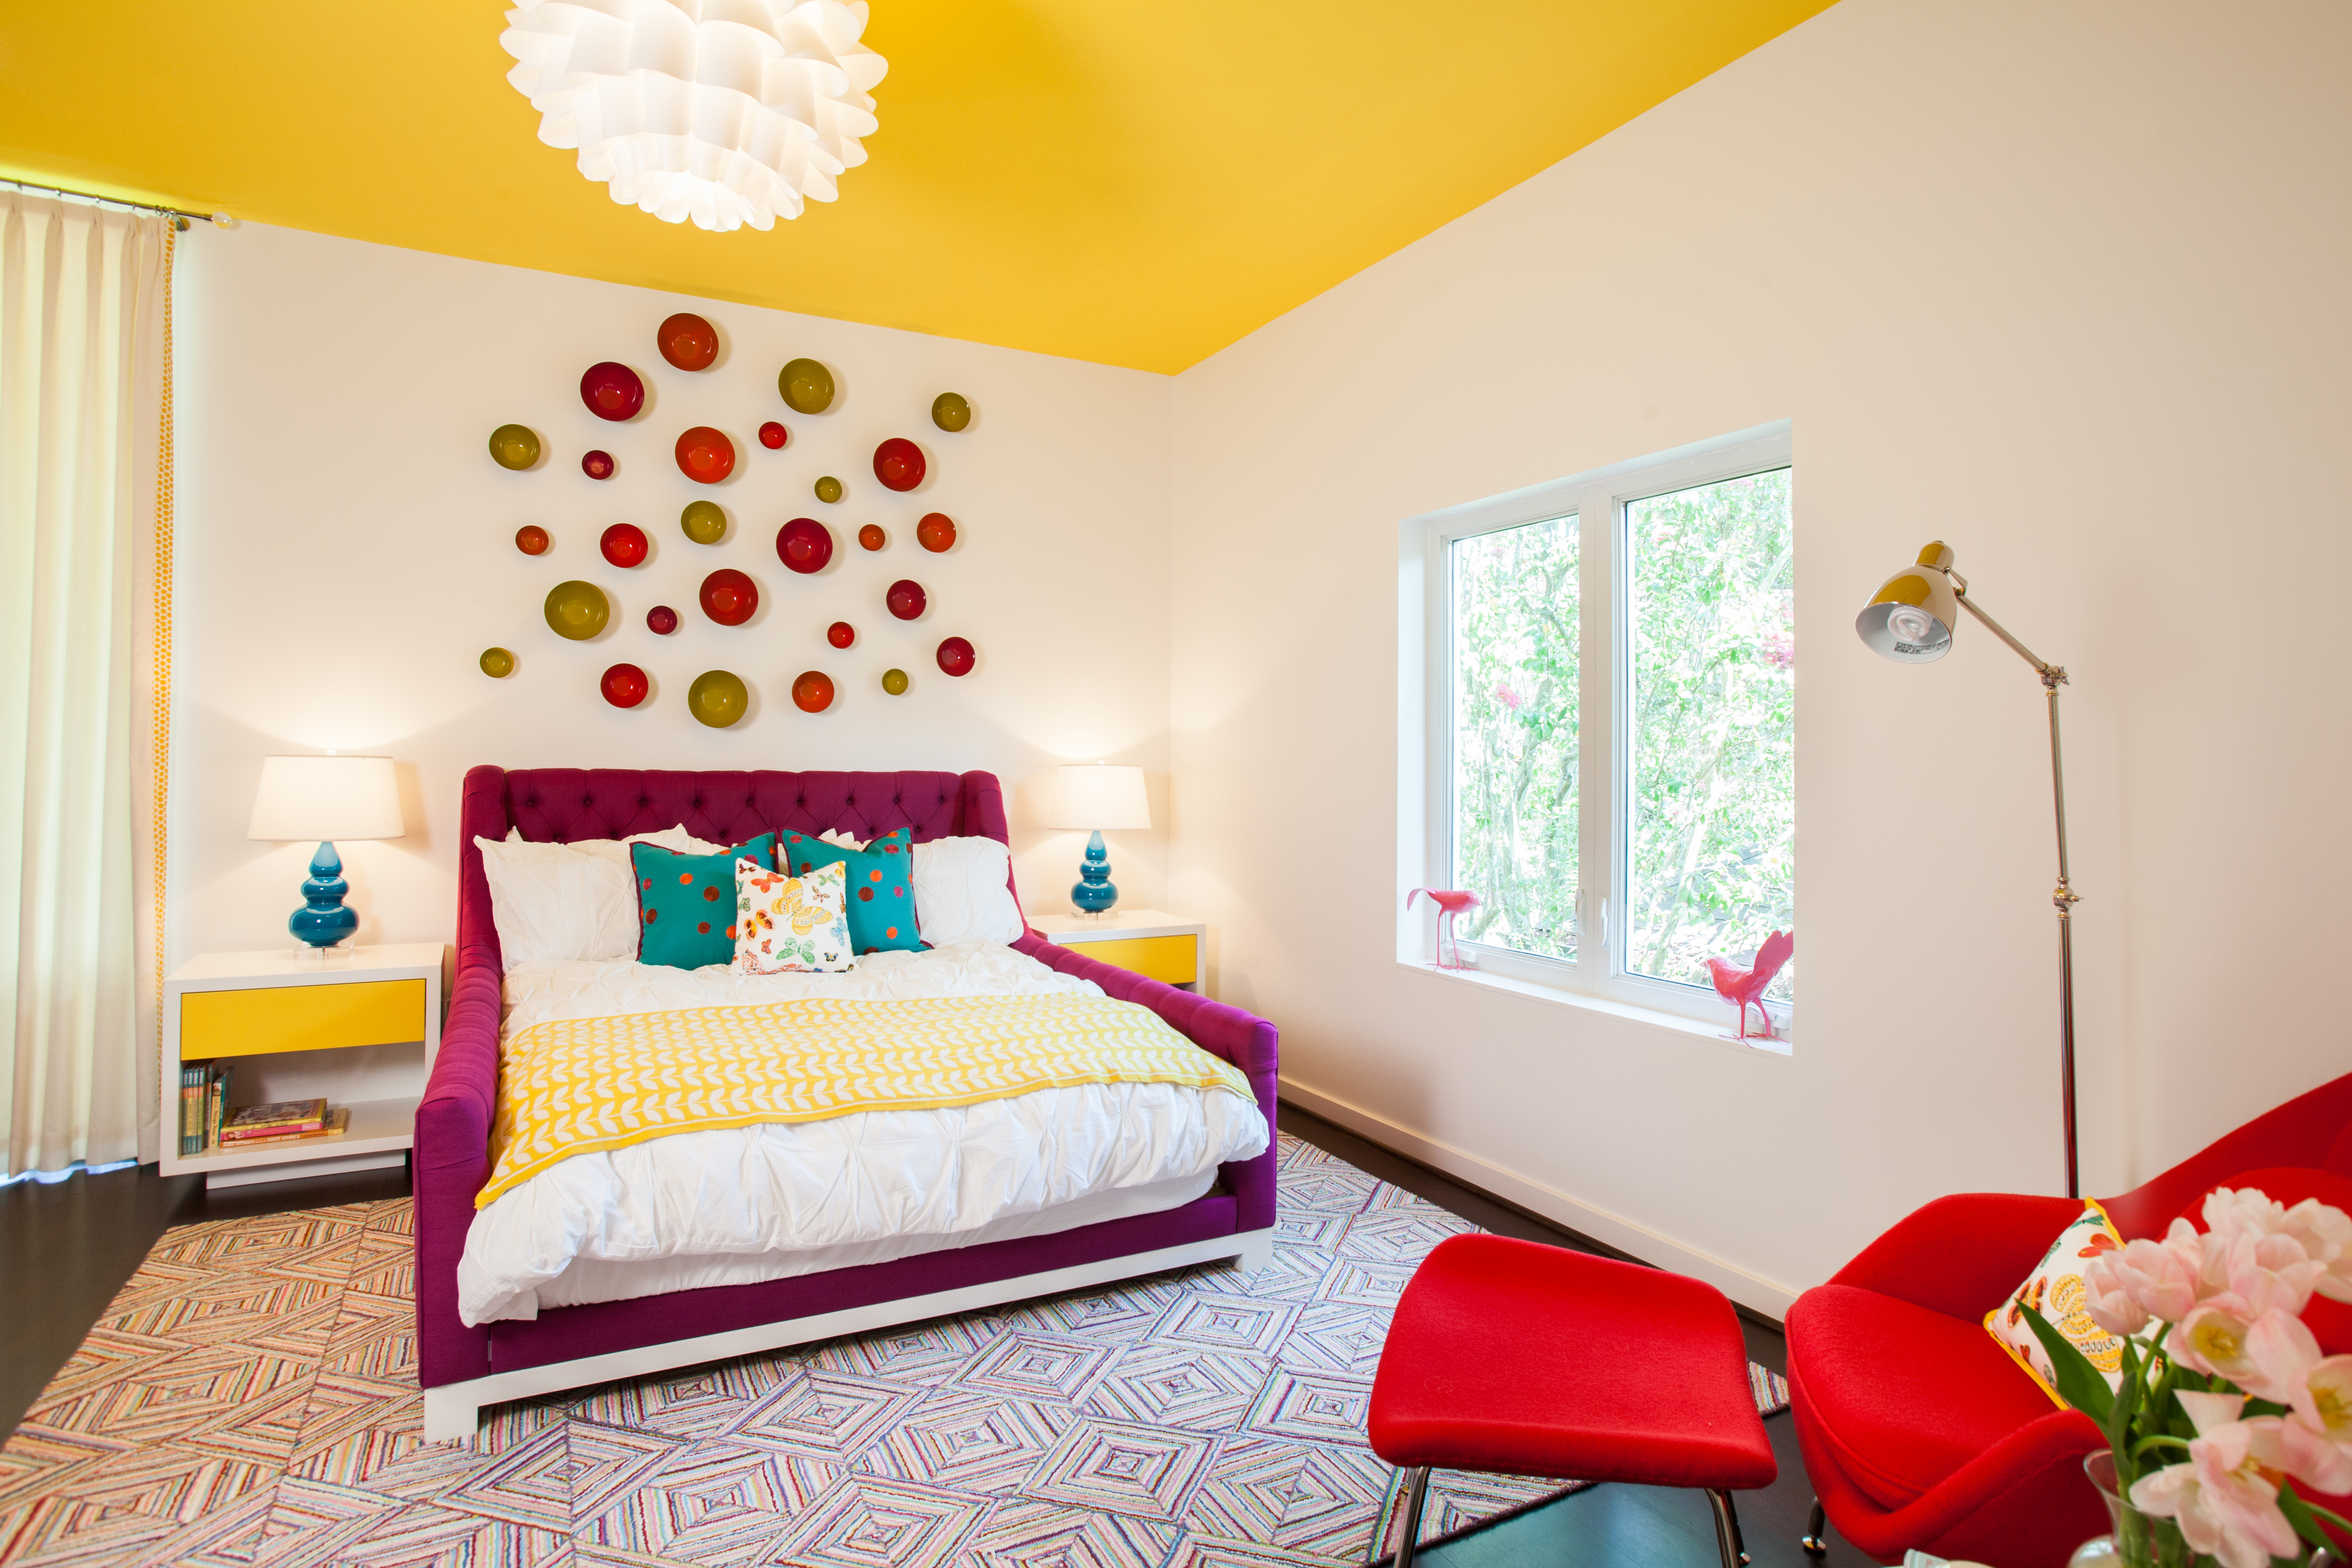 Colorful teen bedroom with bright yellow ceiling - Laura U Interior Design